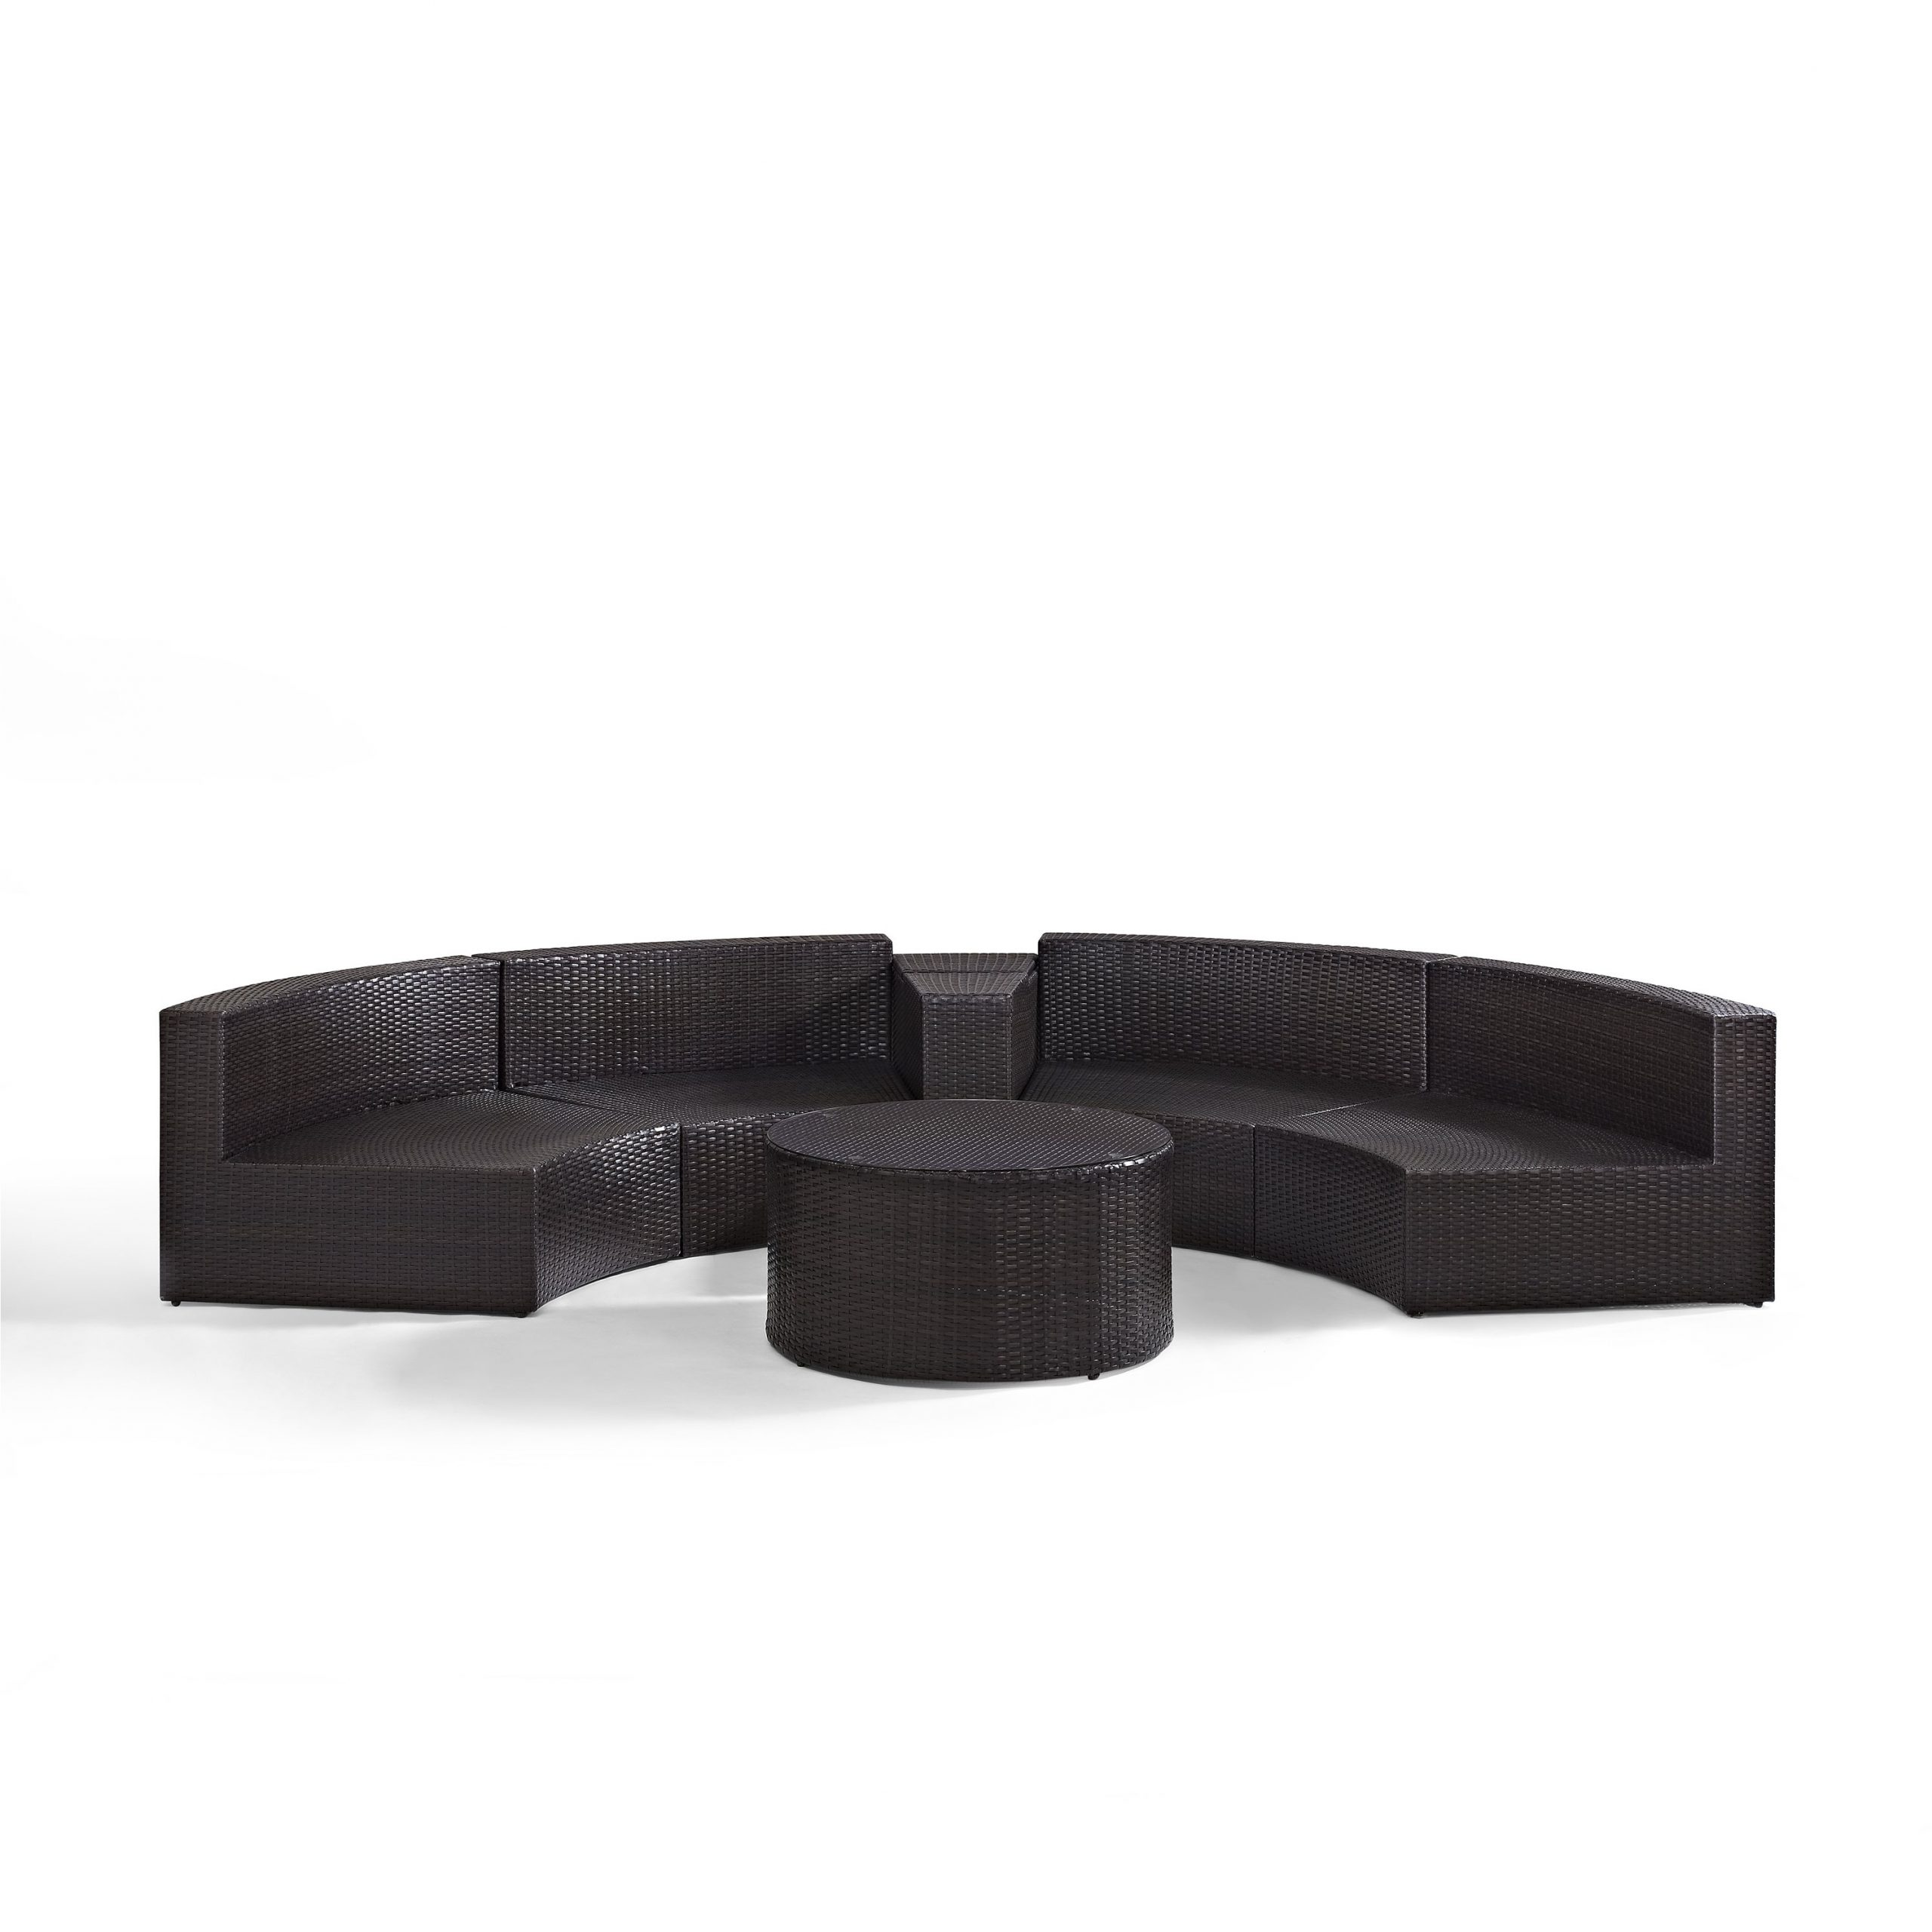 Catalina Outdoor Right Arm Sectional Pieces With Cushions In Fashionable Catalina 4 Piece Outdoor Wicker Seating Set With Sand Cushions Two Round Sectional Sofas,arm Table,and Glass Top Coffee Table (View 17 of 25)